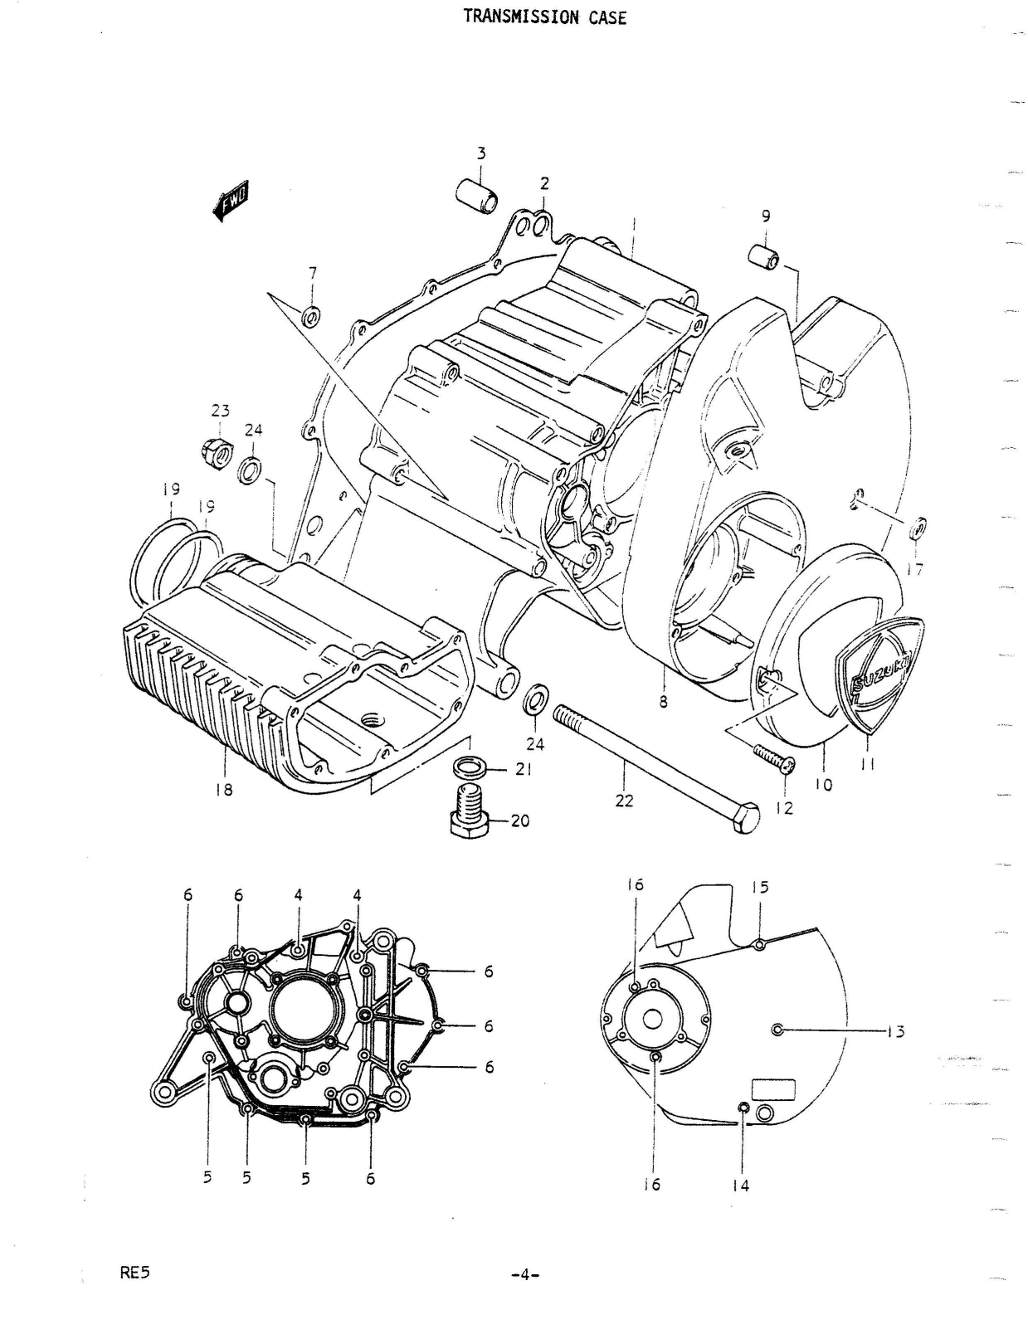 Re5 Parts Manual Auto Engine Diagram Counter Weight Cover